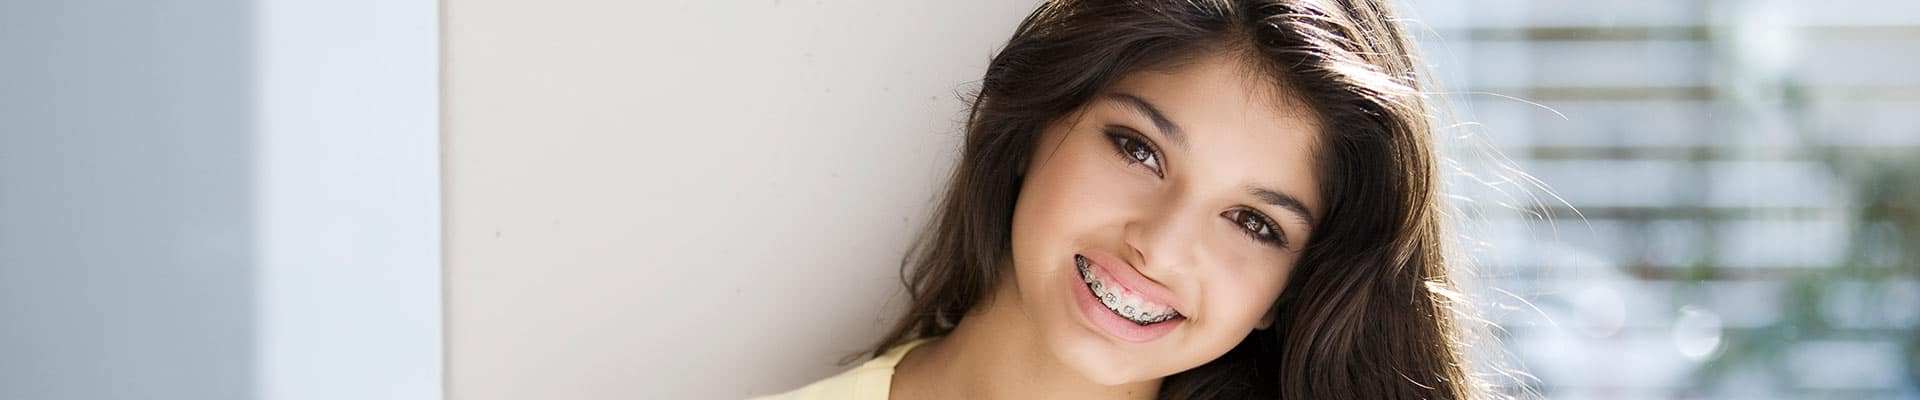 About Orthodontics Teen Girl at Resler Orthodontics in Saginaw and Clio MI